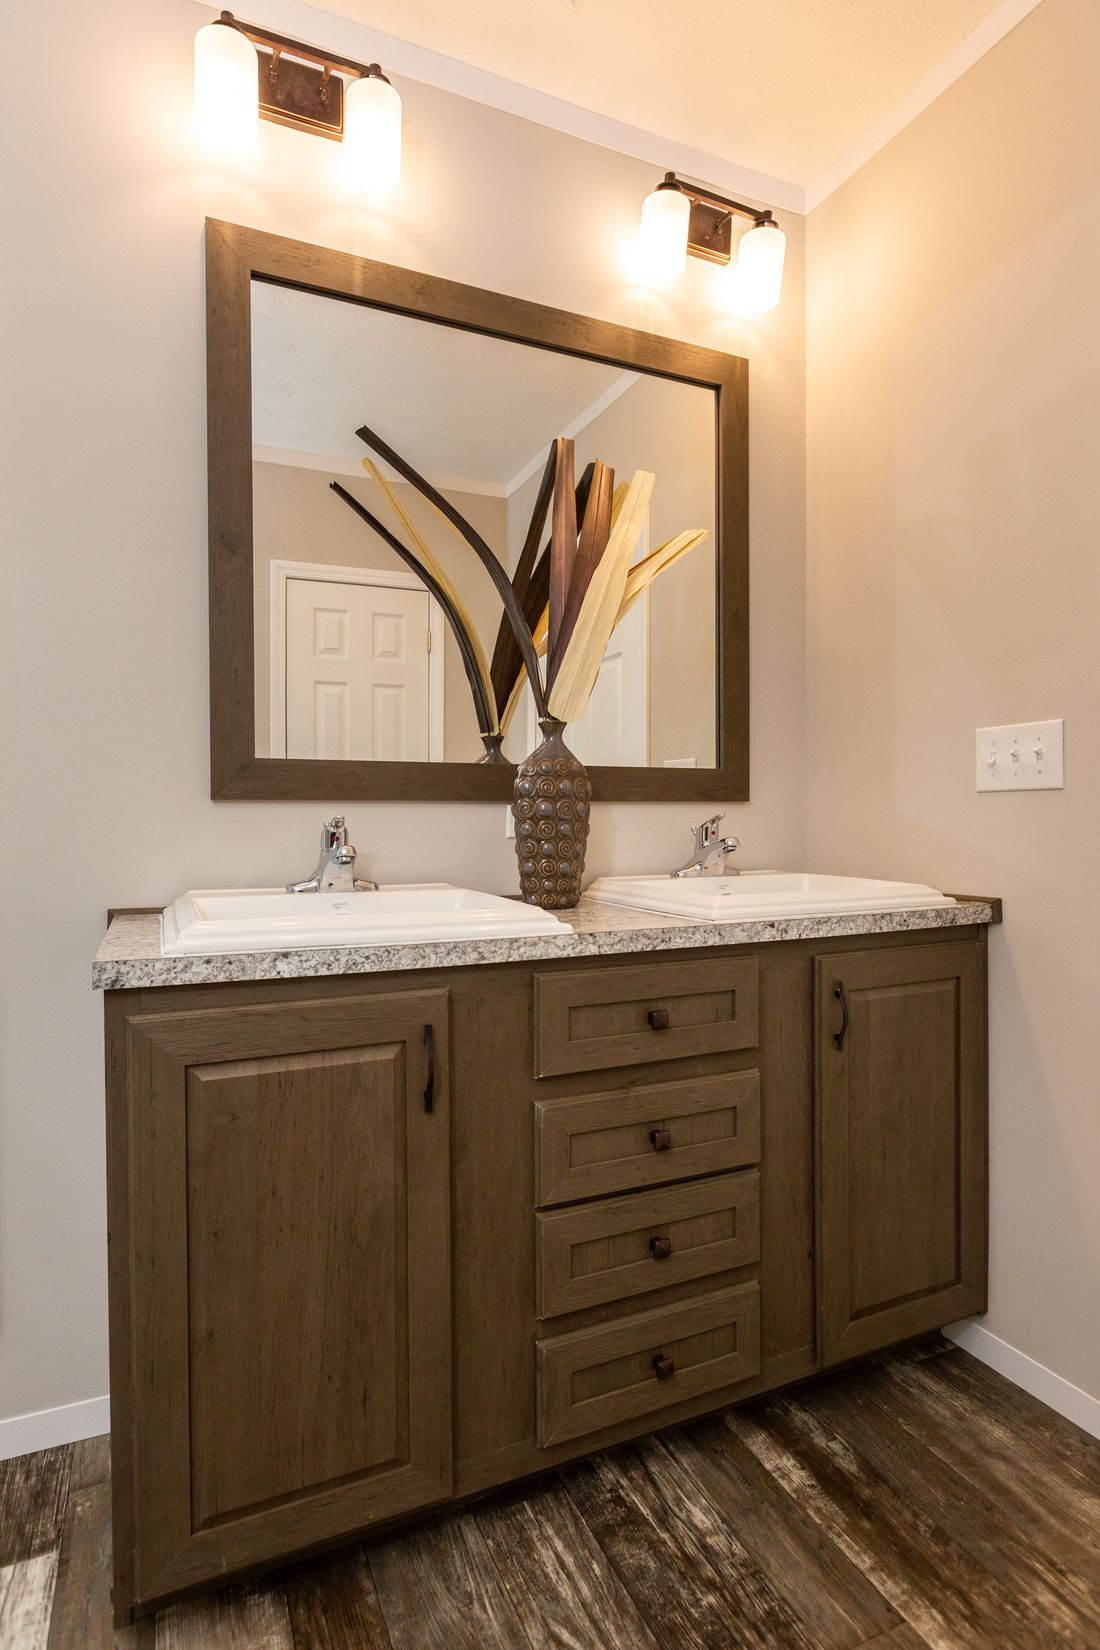 The CLASSIC 56D Master Bathroom. This Manufactured Mobile Home features 3 bedrooms and 2 baths.